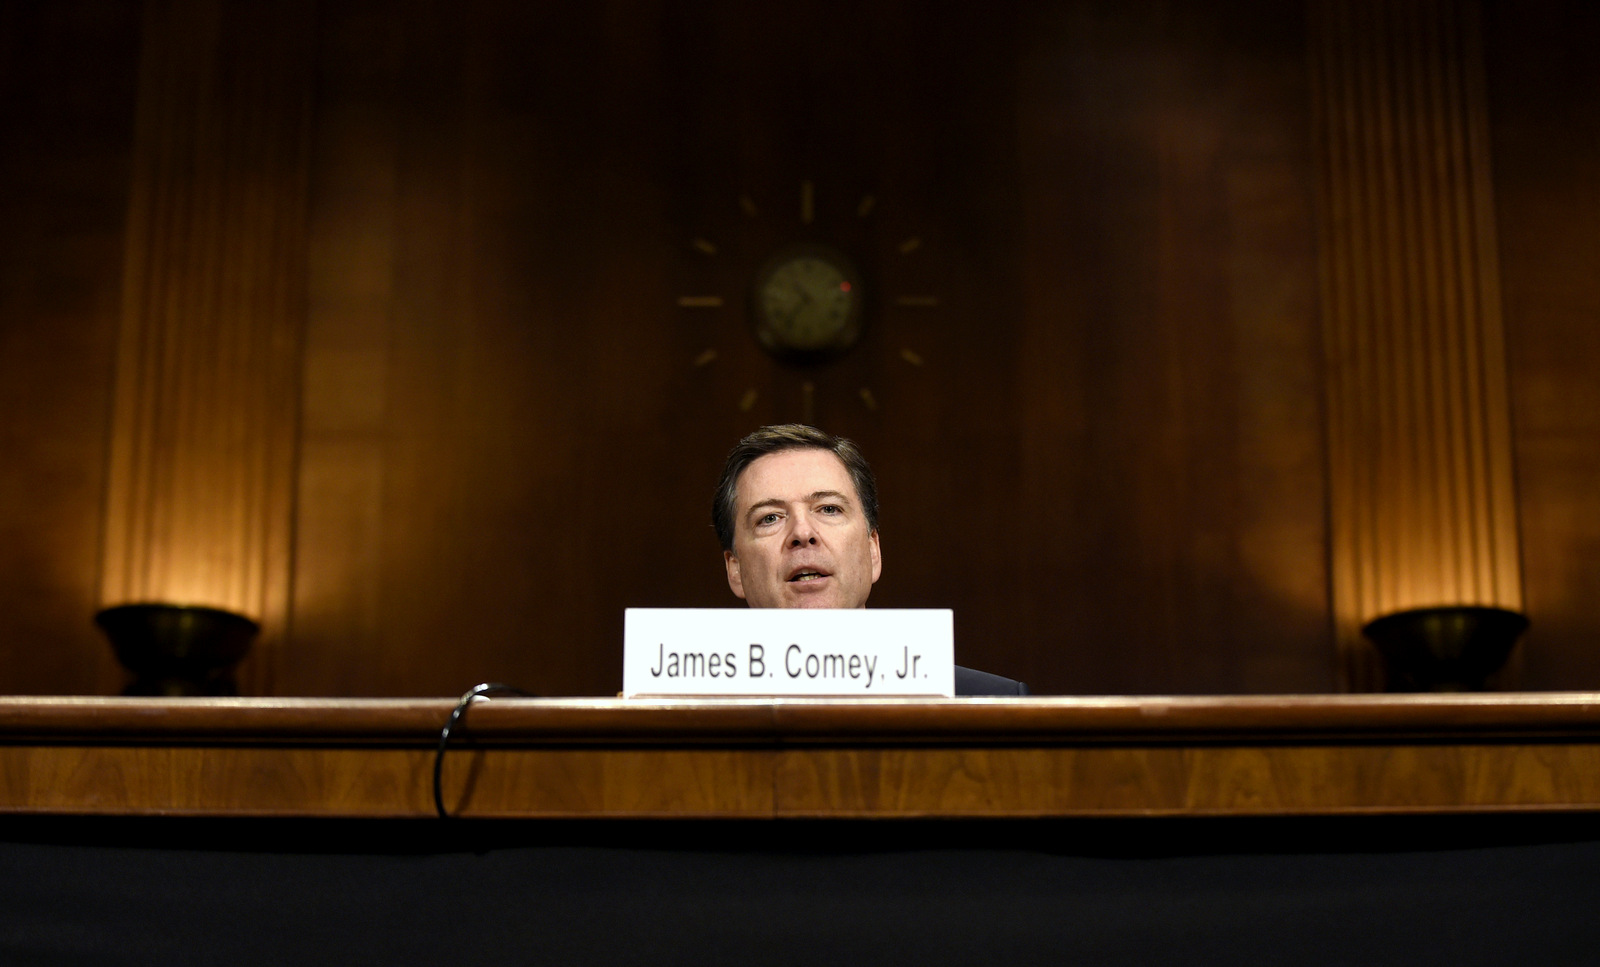 FBI Director James Comey testifies on Capitol Hill in Washington, Wednesday, Dec. 9, 2015, before the Senate Judiciary Committee. Comey said the two San Bernardino shooters were radicalized at least two years ago and had discussed jihad and martyrdom as early as 2013. (AP Photo/Susan Walsh)